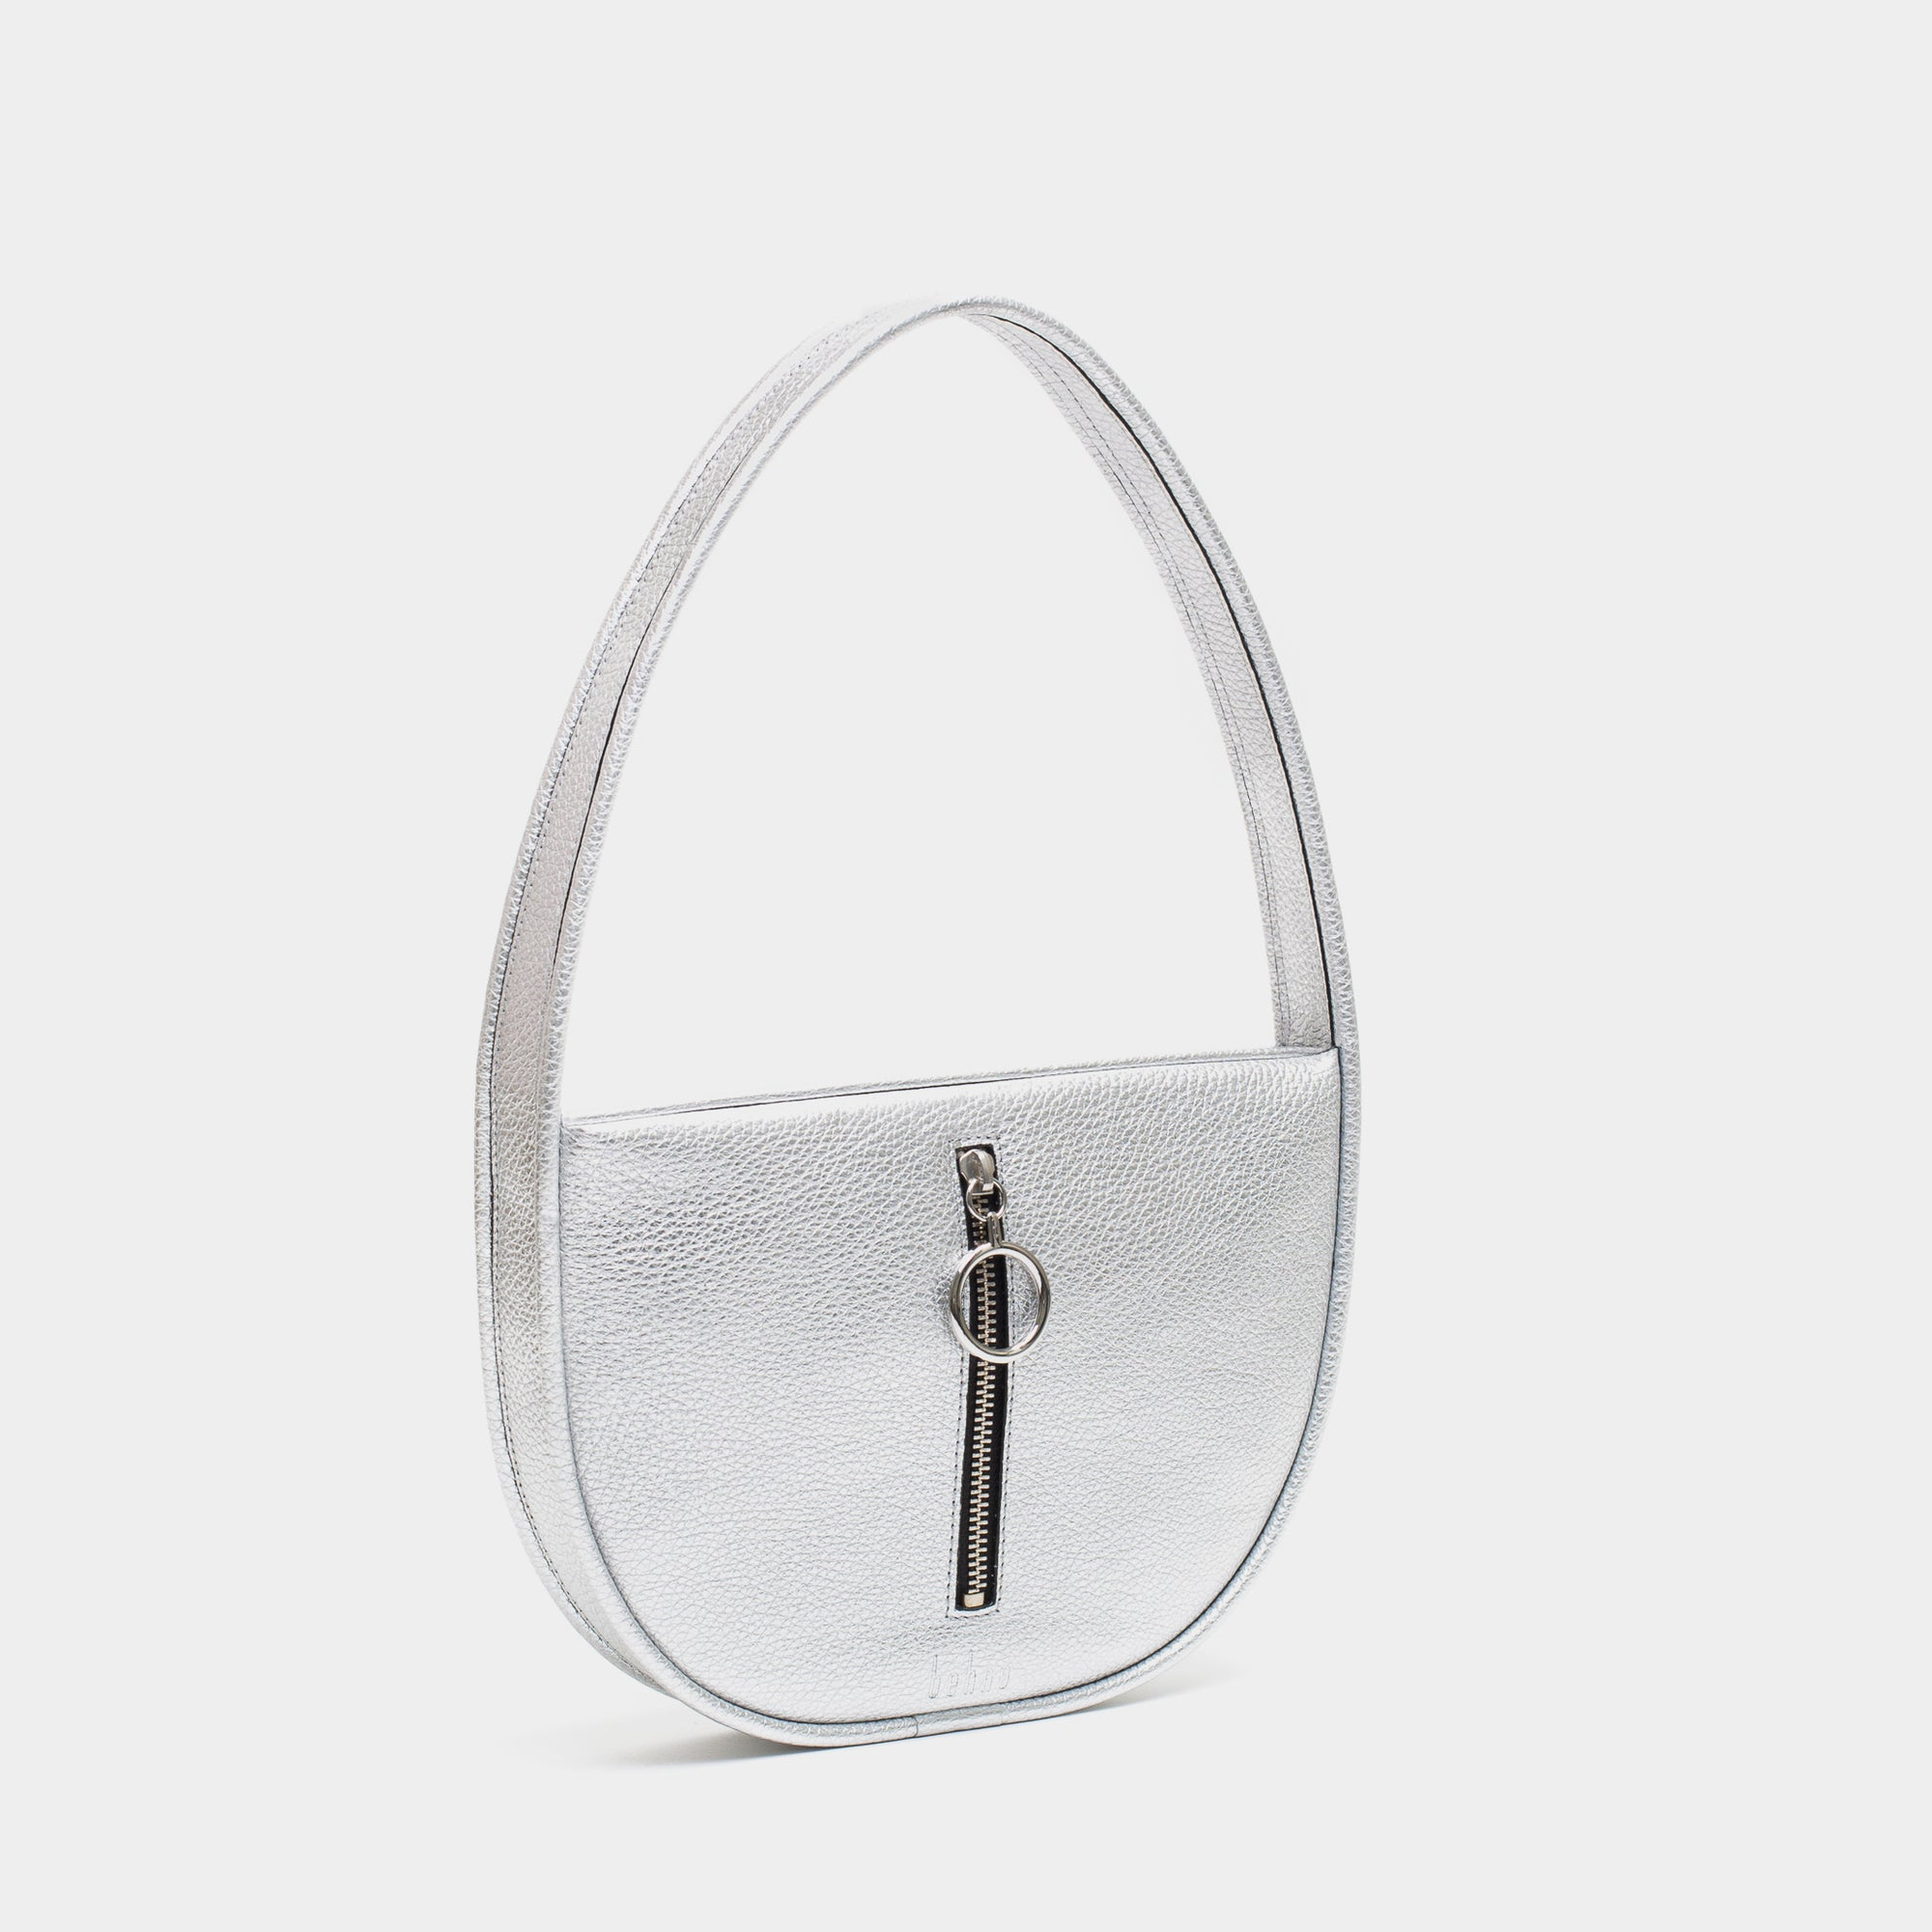 GRETA SINGLE SHOULDER BAG METALLIC SILVER